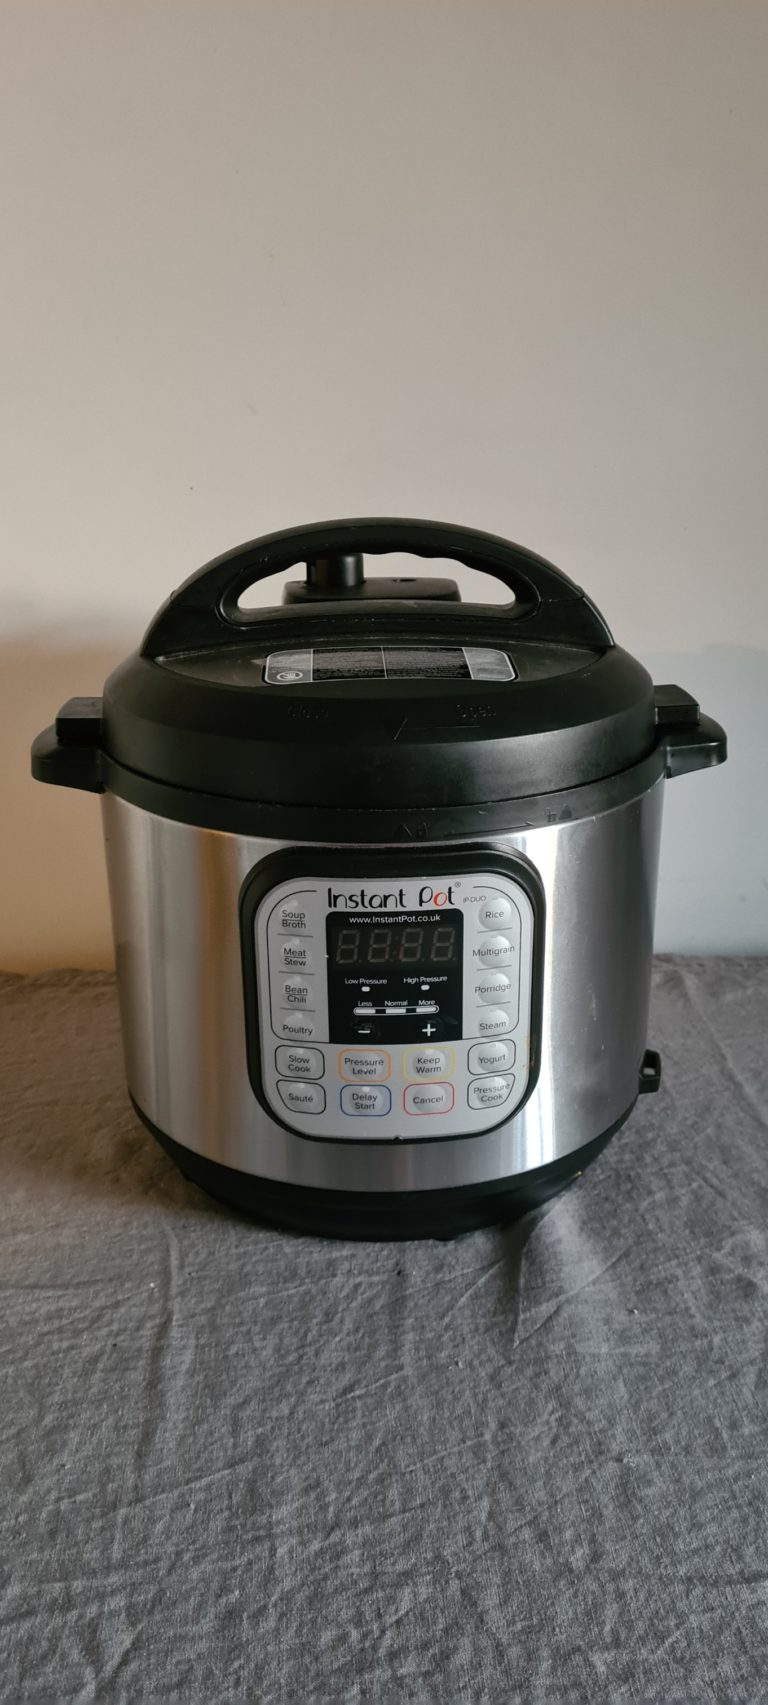 one of the Instant Pot models shown in this Instant Pot Sizes Guide